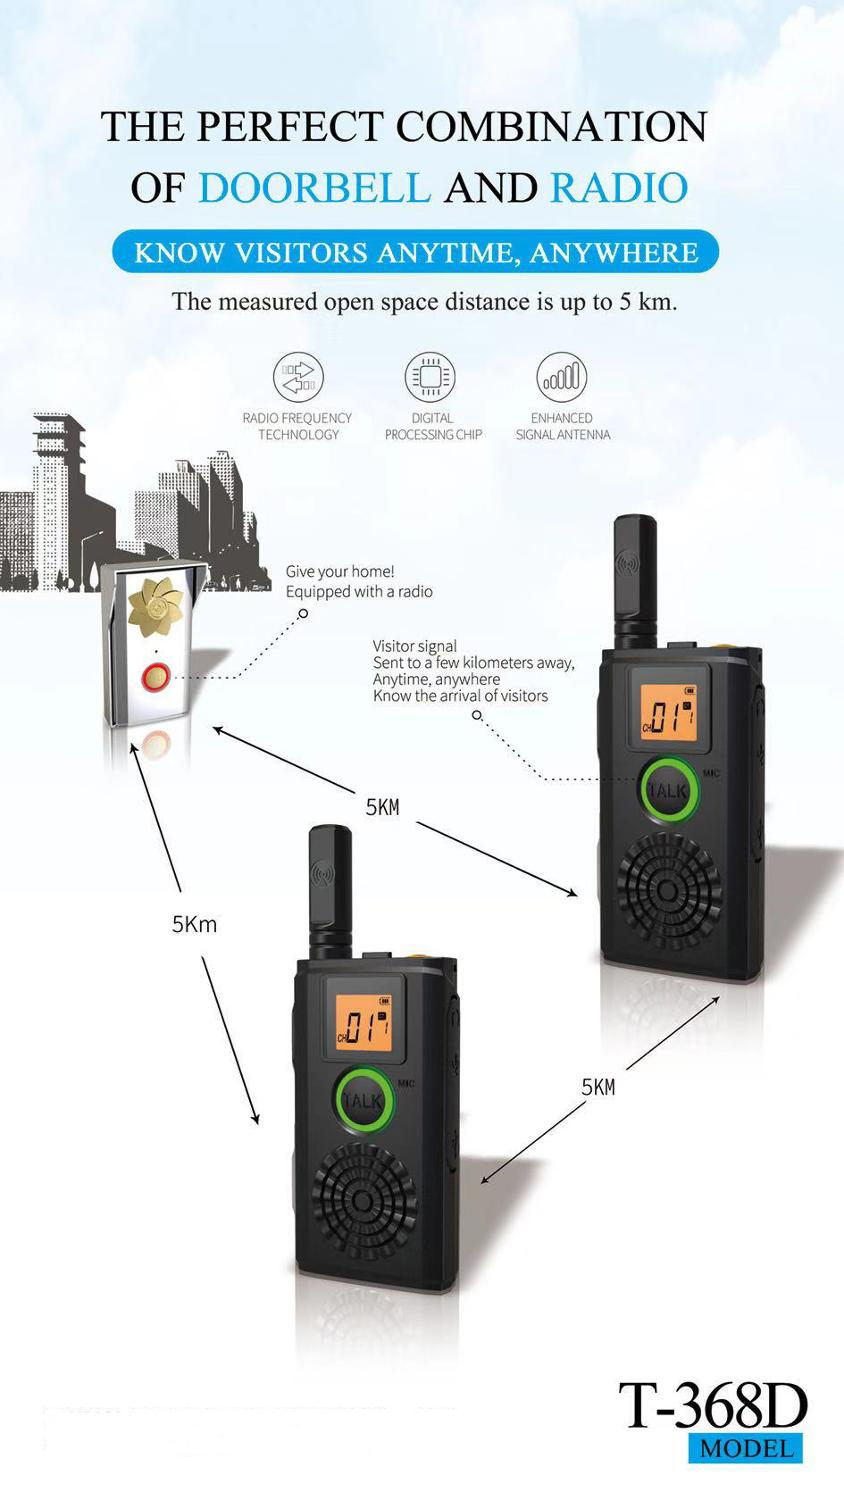 Wireless Two Way Radio Voice Doorbell System UHF 470-480MHz RF Radio Frequency Technology Doorbell Walkie Talkie